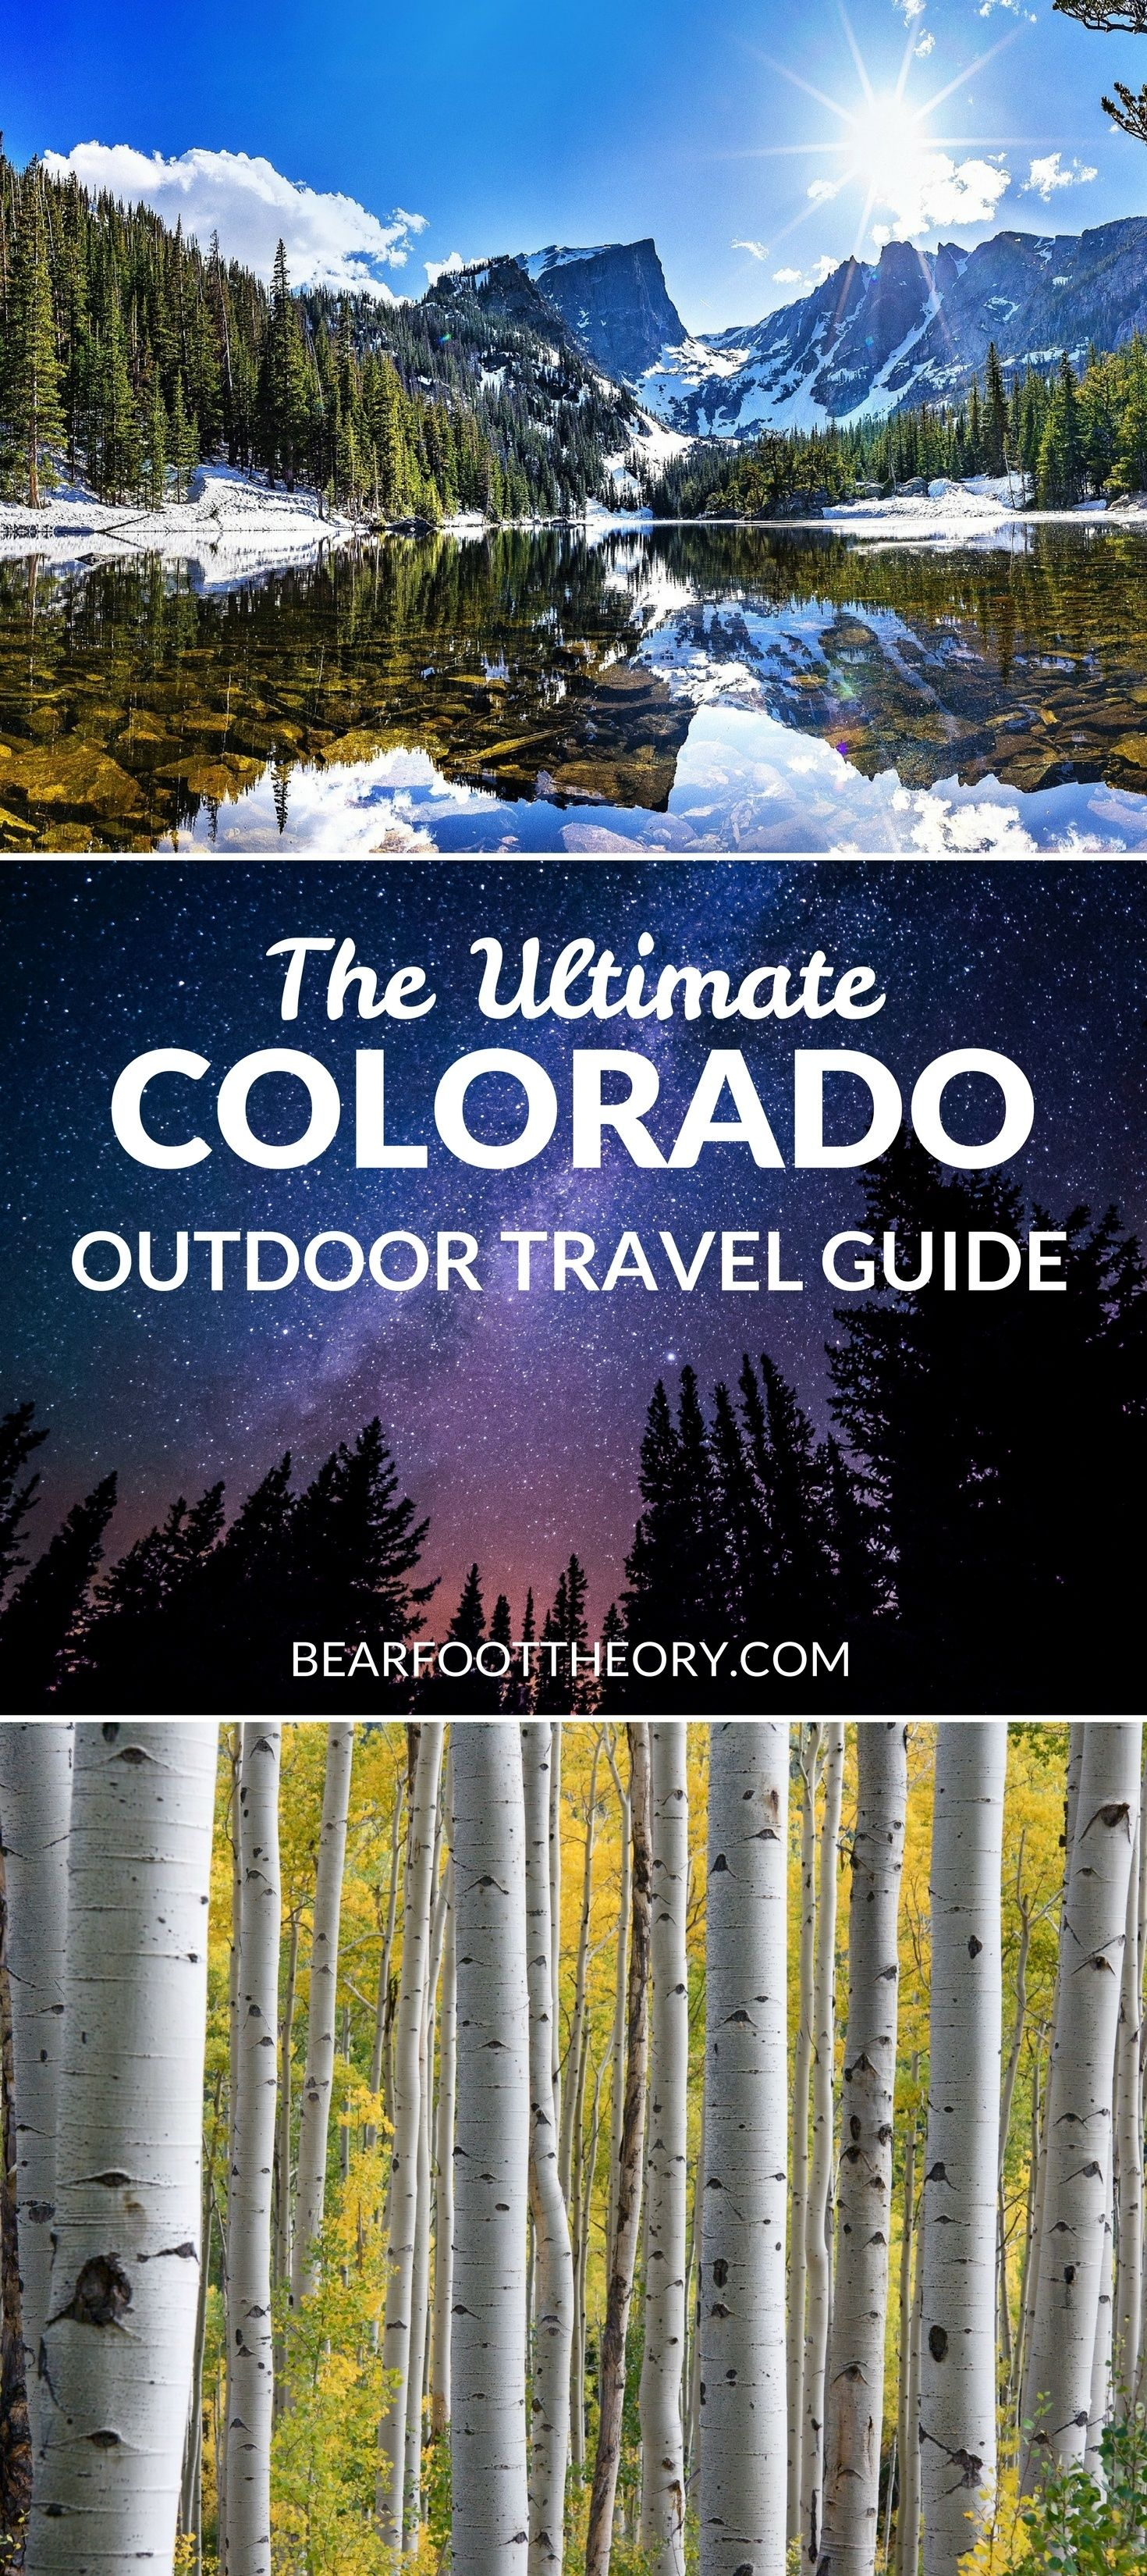 Plan an adventurous trip to Colorado with our outdoor travel guide featuring the best outdoor activities, national parks & most popular Colorado blog posts